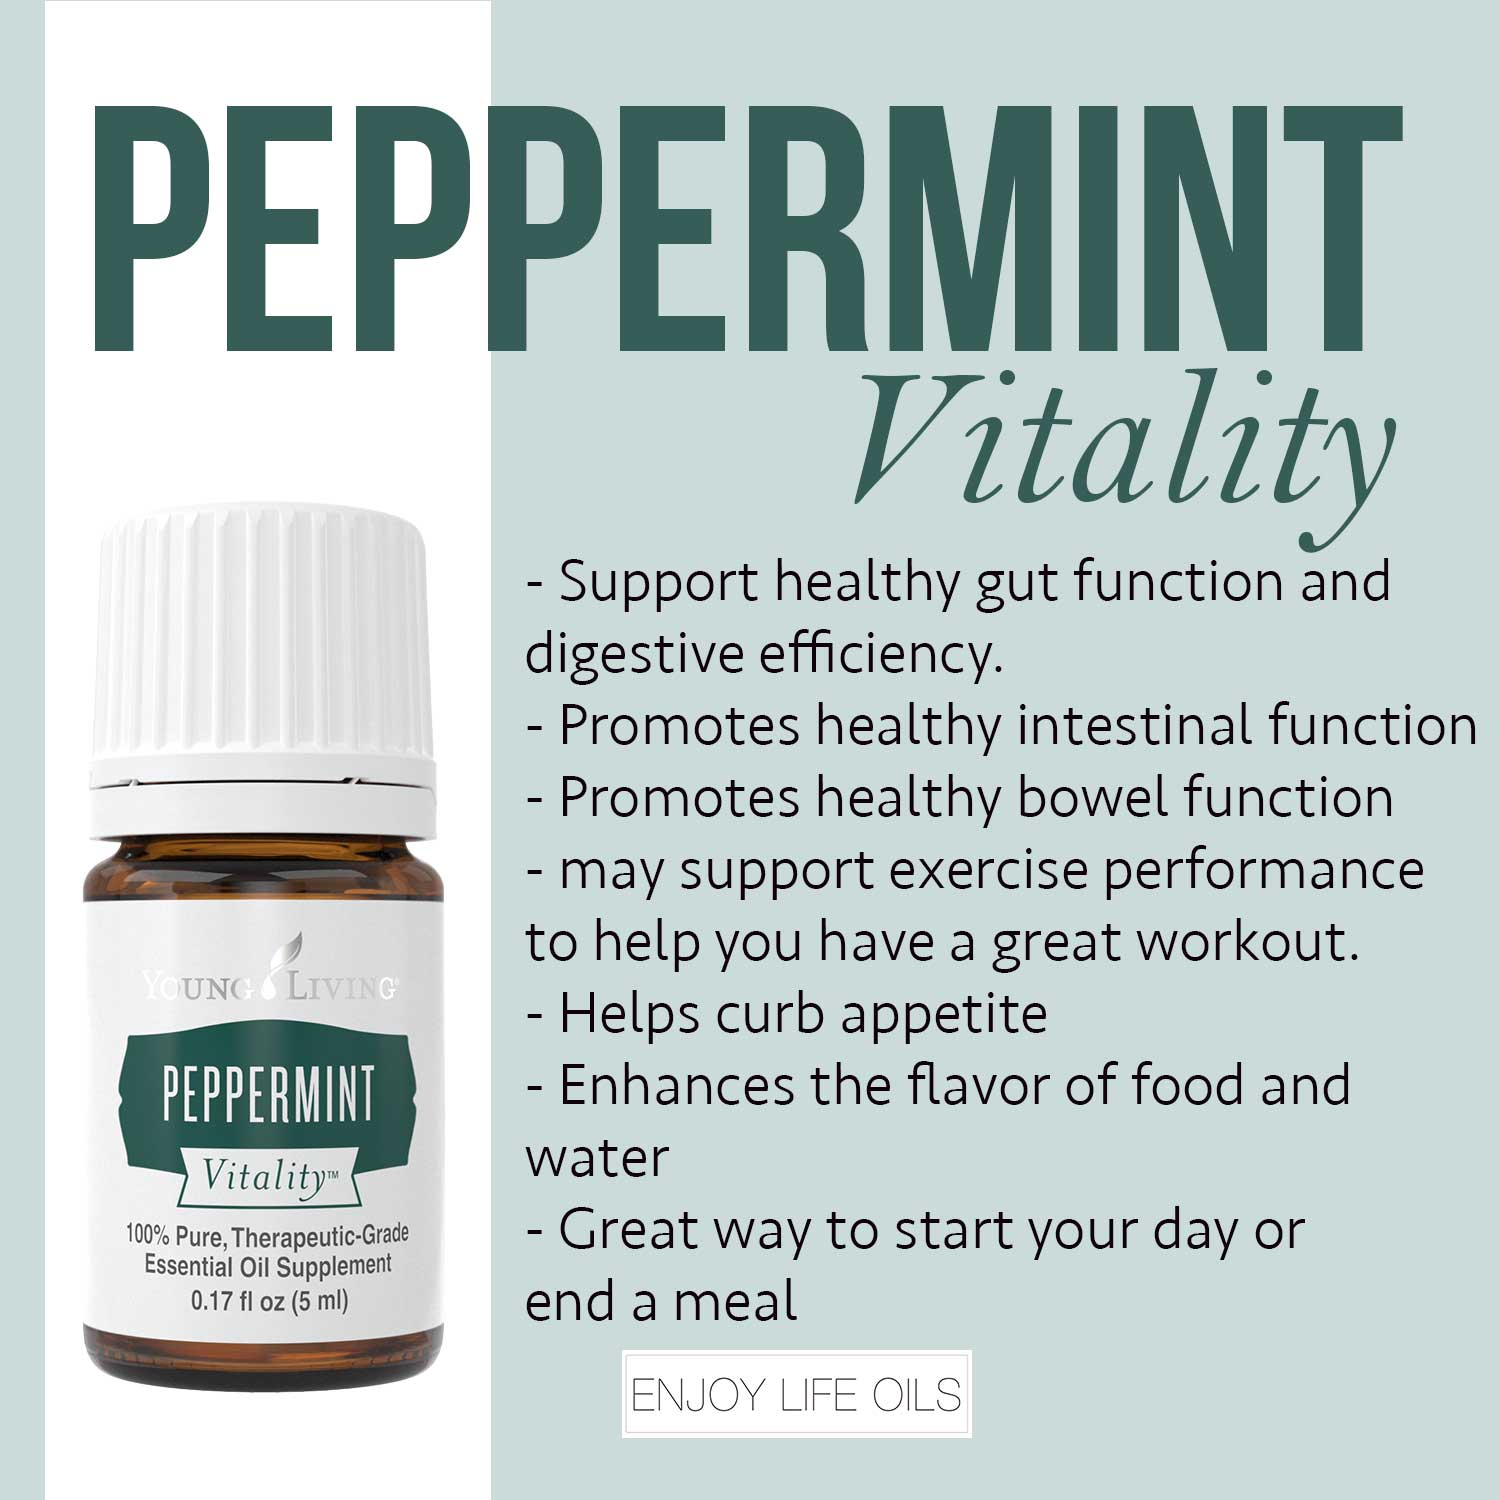 peppermint-vitality-essential-oil-uses